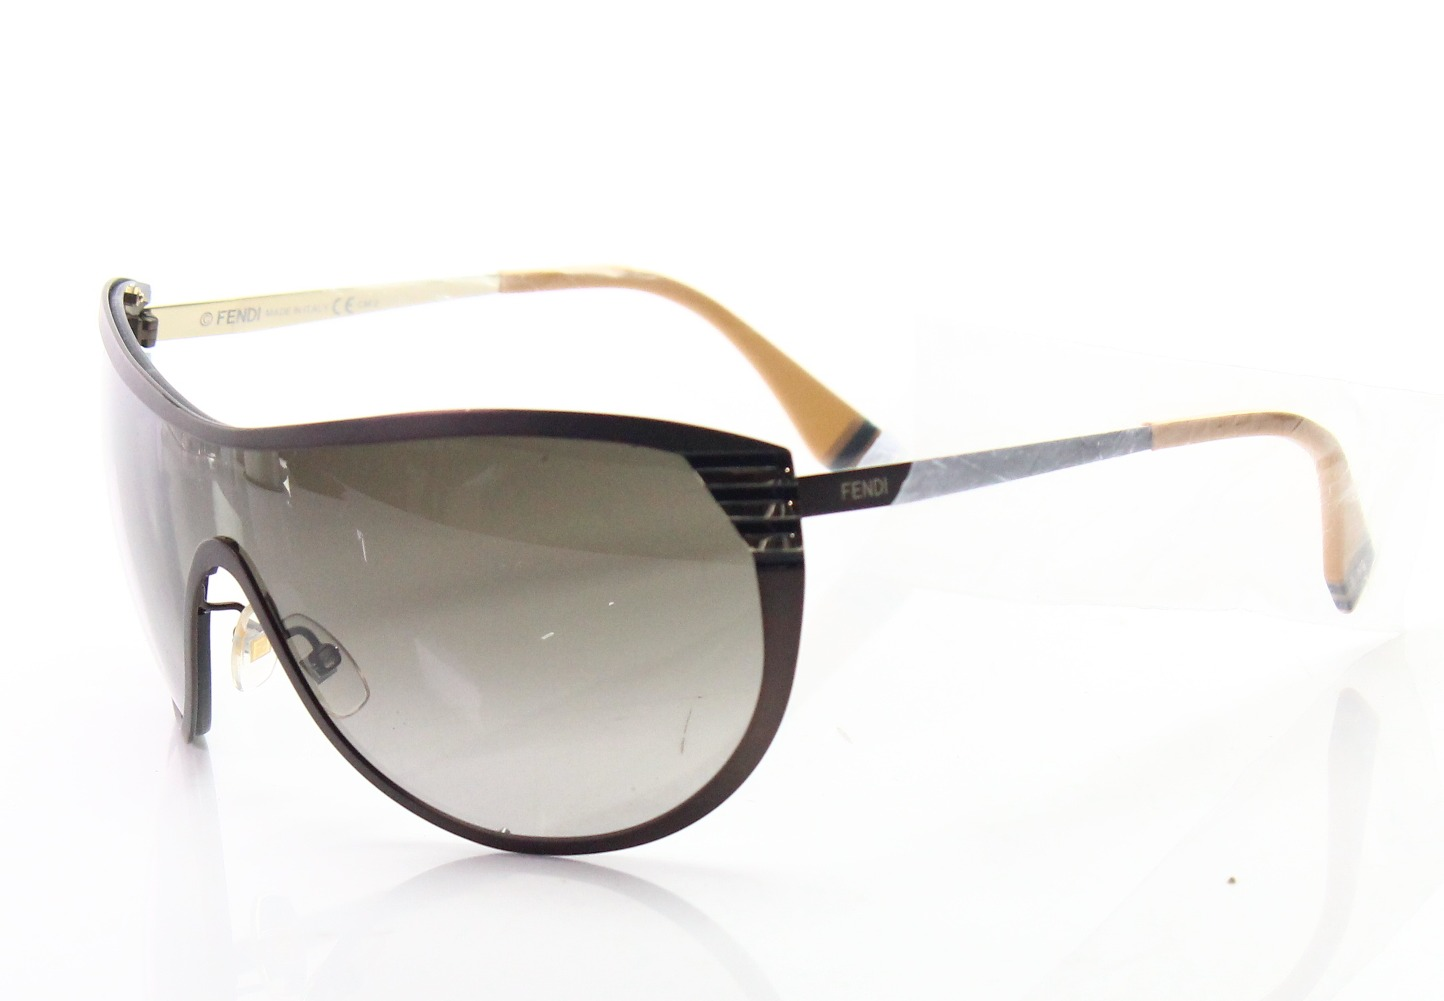 33d0e4ae413 Details about Fendi NEW Brown Gradient FF0057S MWTHA Women s Shield  Sunglasses  239  141